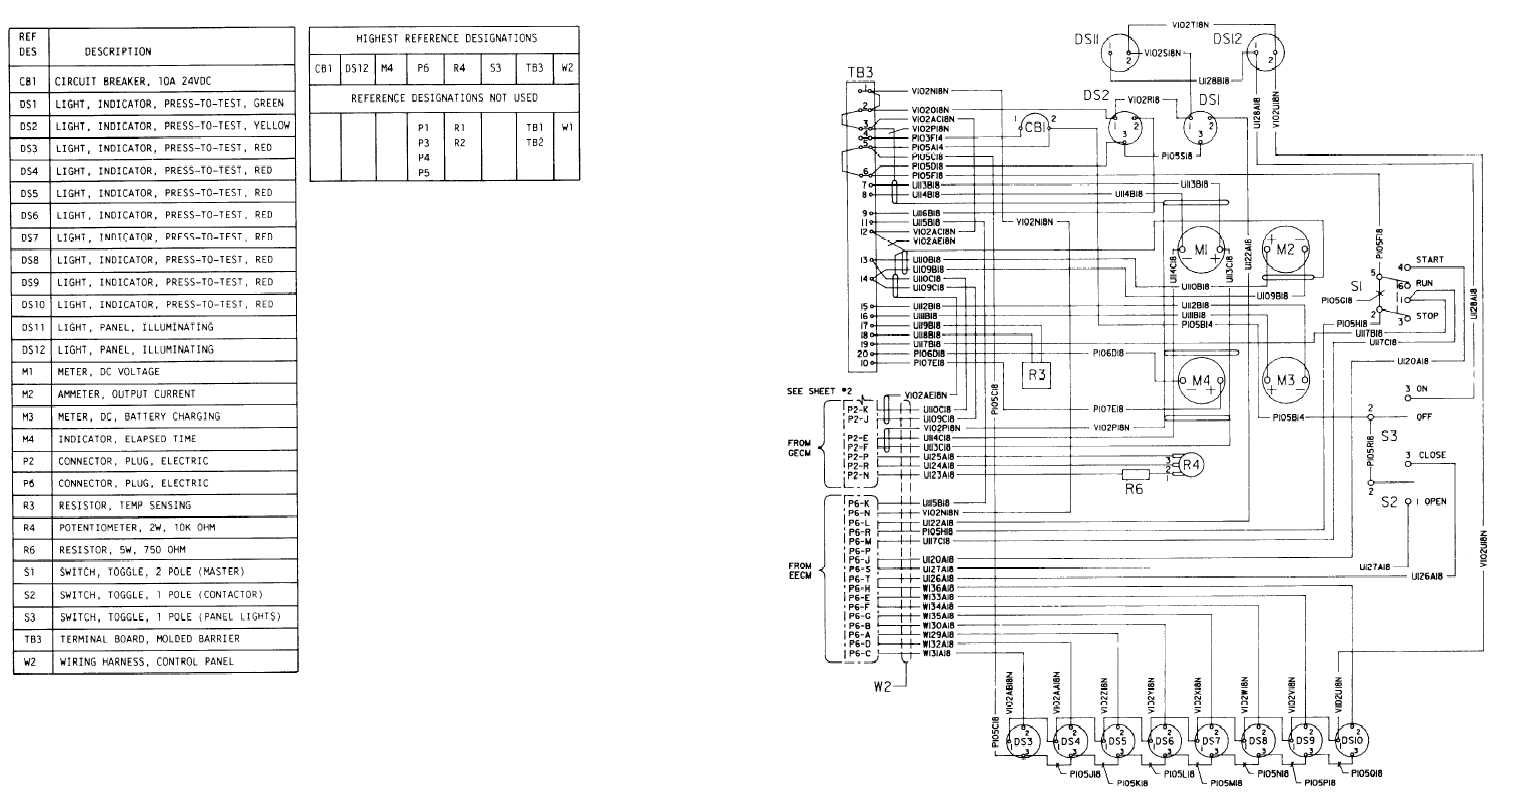 Fire Alarm Control Panel Wiring Diagram For Electrical